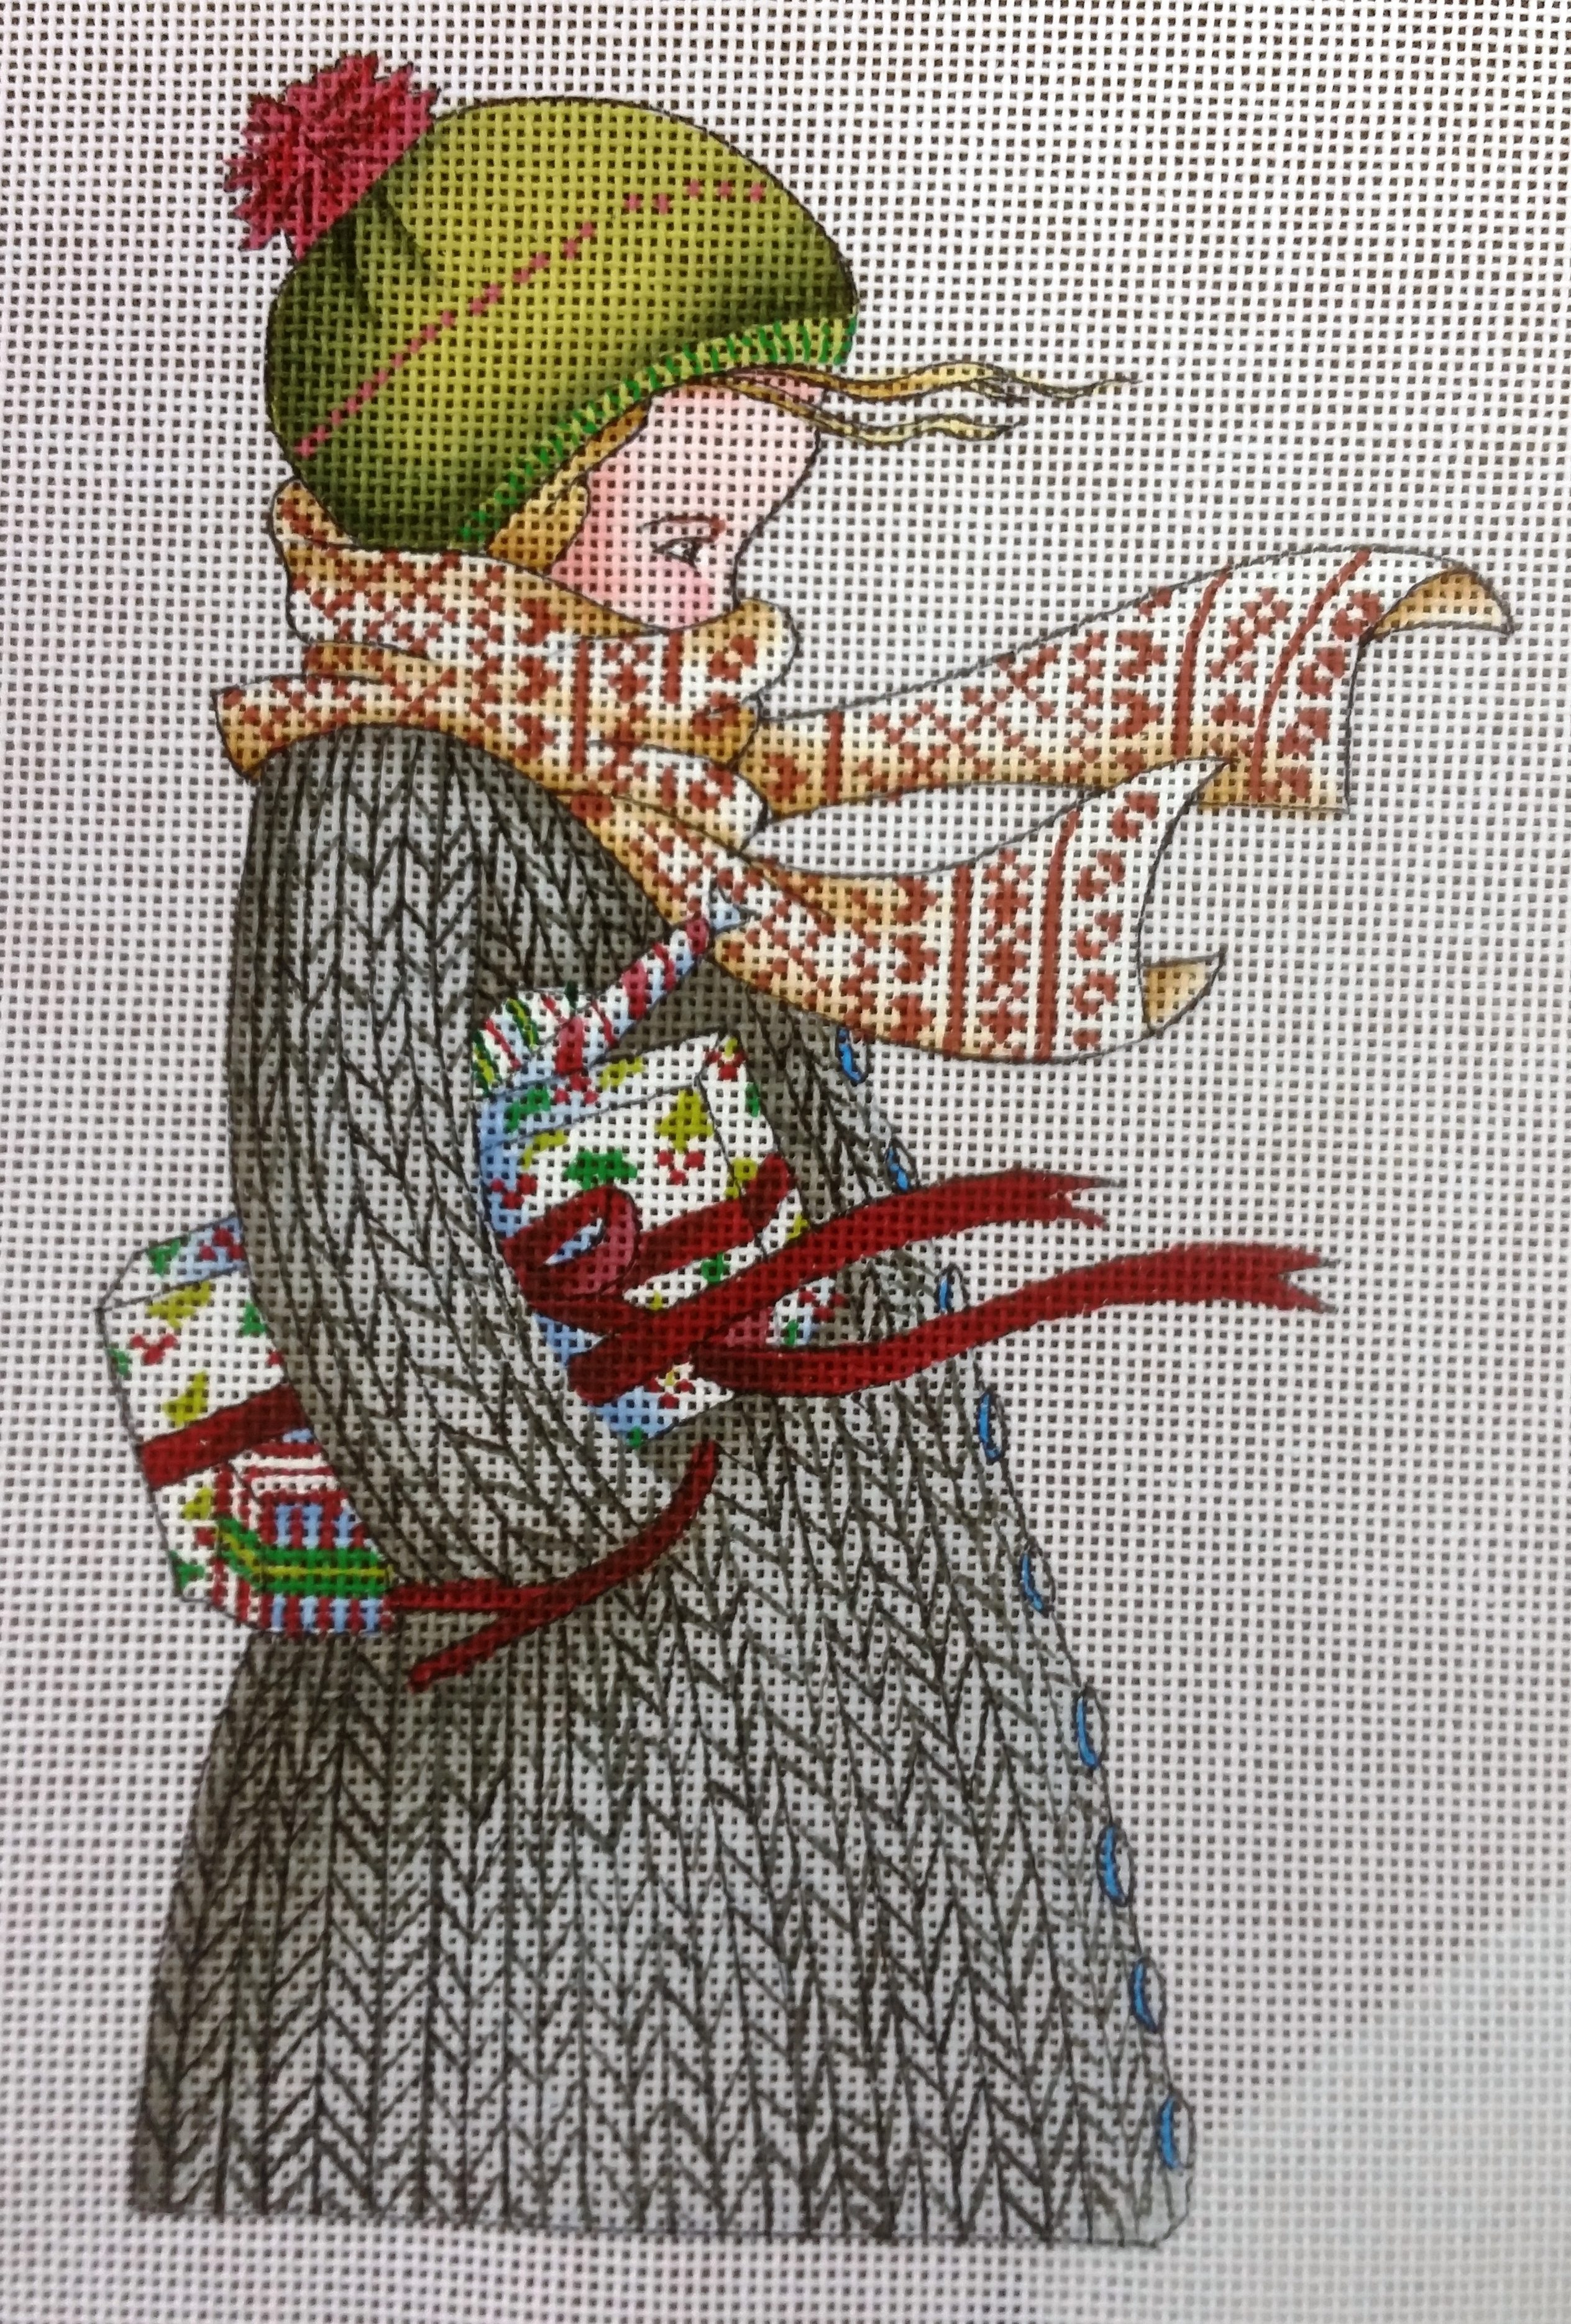 Painted Needlepoint Canvas Patterns